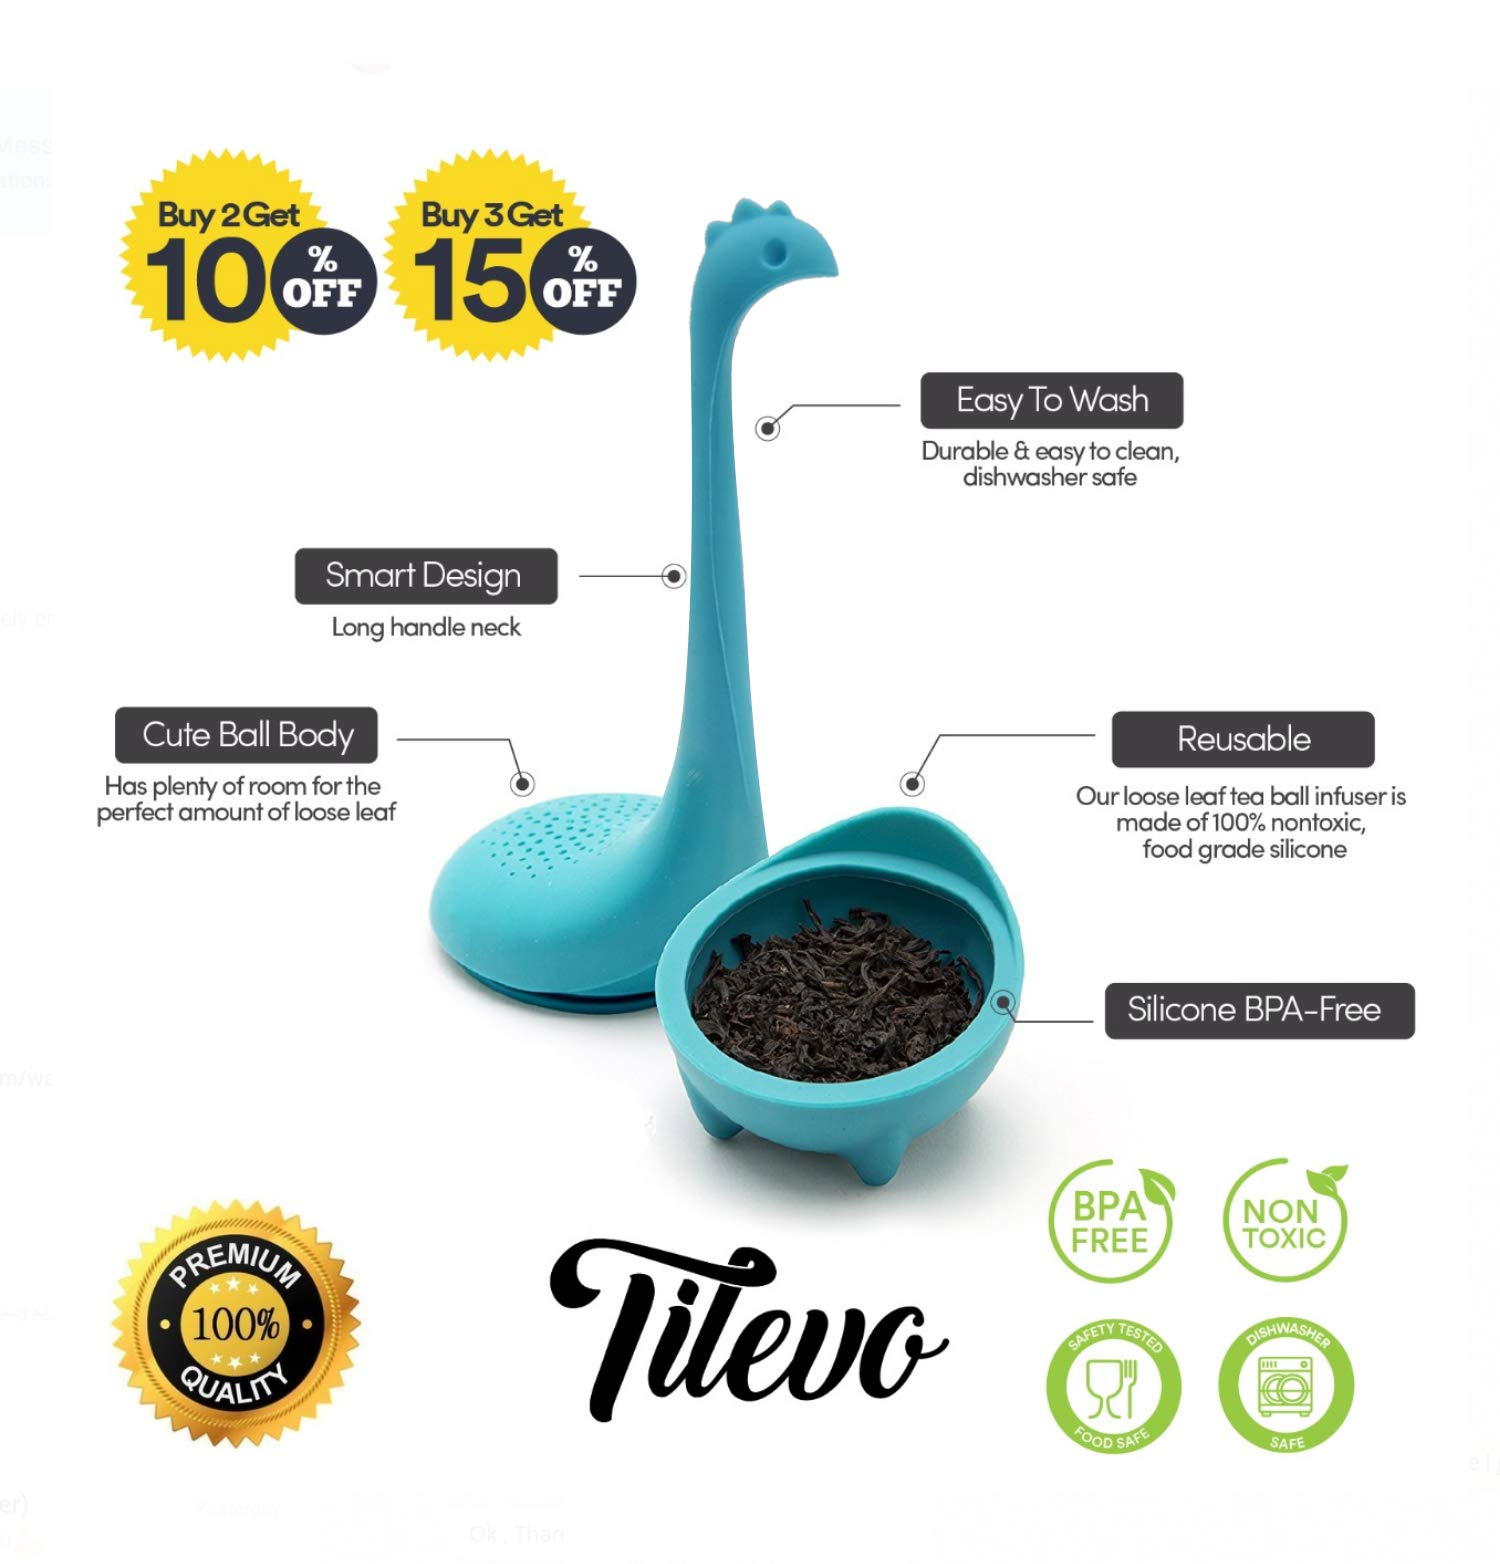 Tilevo Tea Infuser Set of 2 - Dinosaur Loose Leaf Tea Infusers with Long Handle Neck & Cute Ball Body Lake Monster Silicone Tea Strainer & Steeper with Gift Box by Tilevo (Image #2)